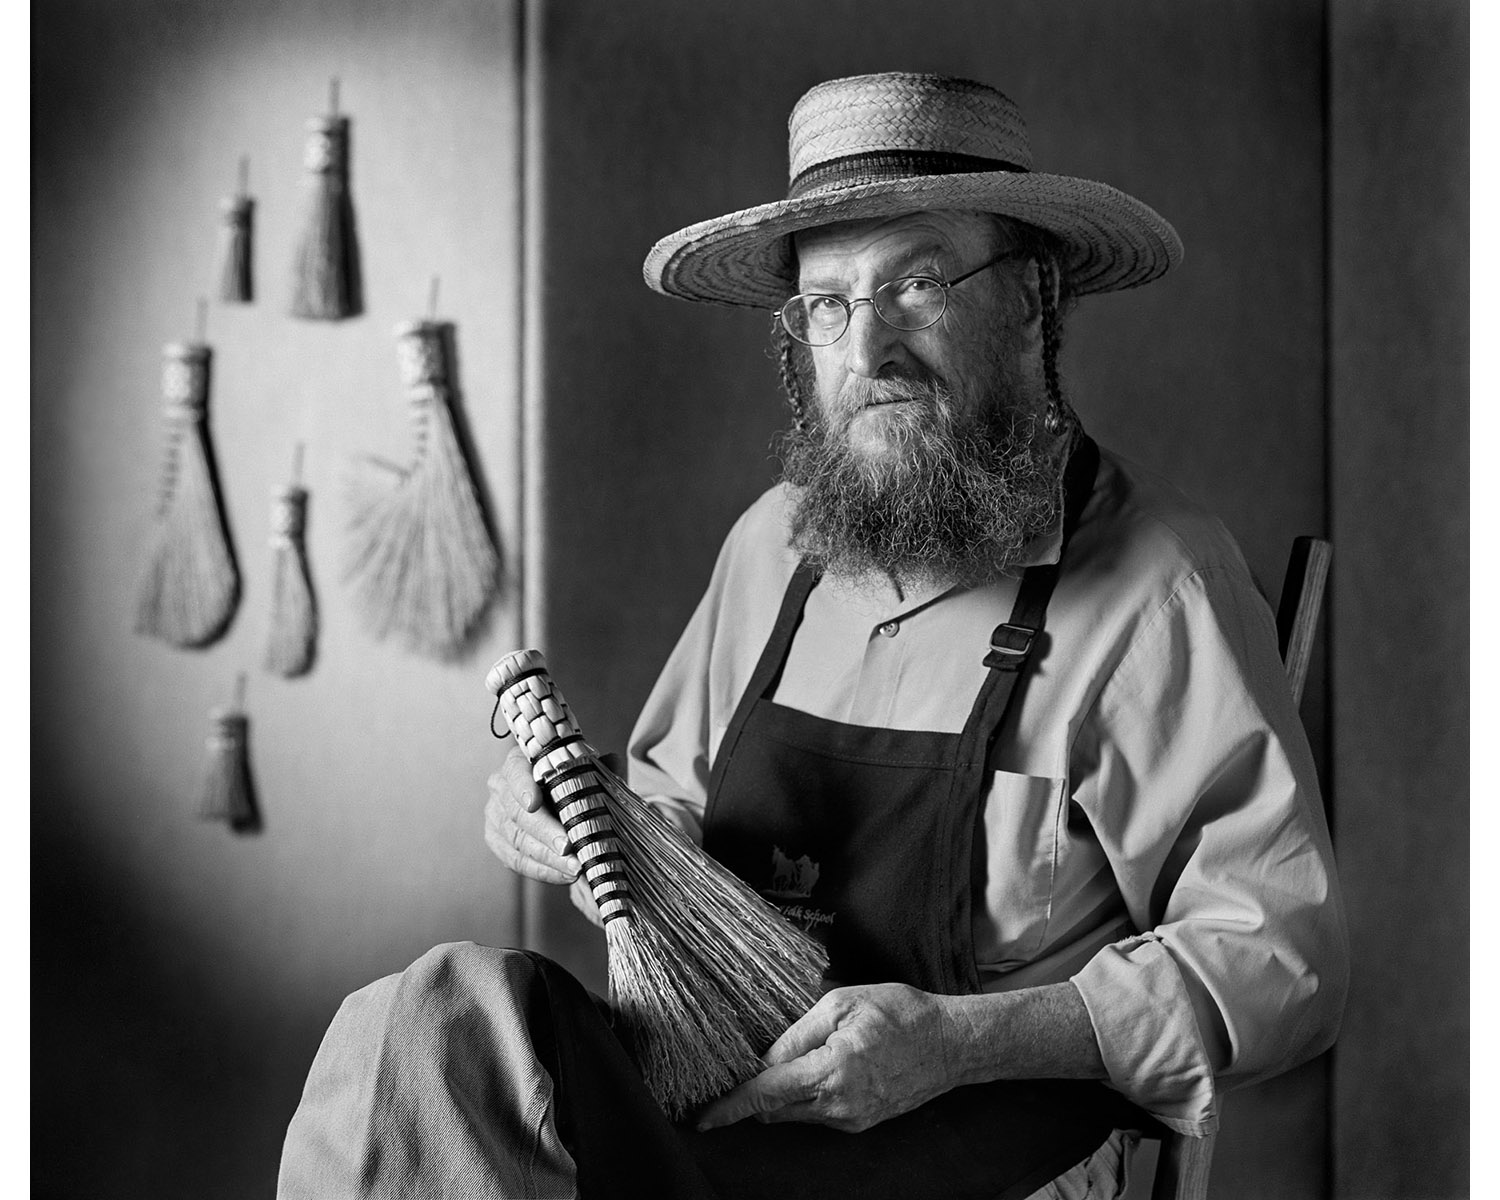 Handmade broom Carlson Tuttle Hands in Harmony Tim Barnwell